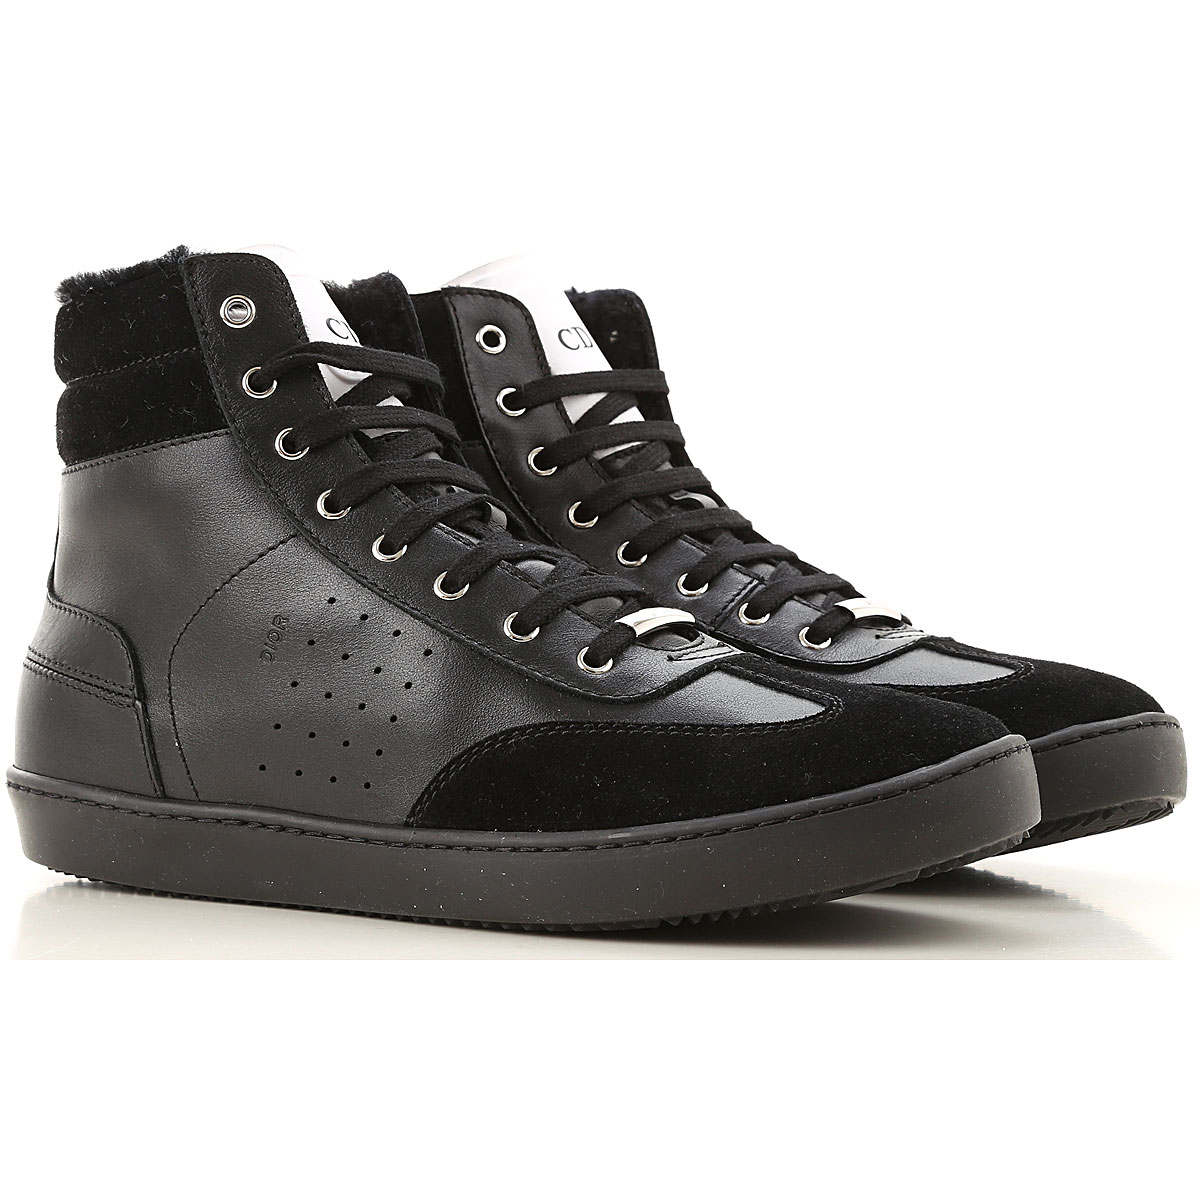 Christian Dior Kids Shoes for Boys On Sale in Outlet, Black, Leather, 2019, 35 37